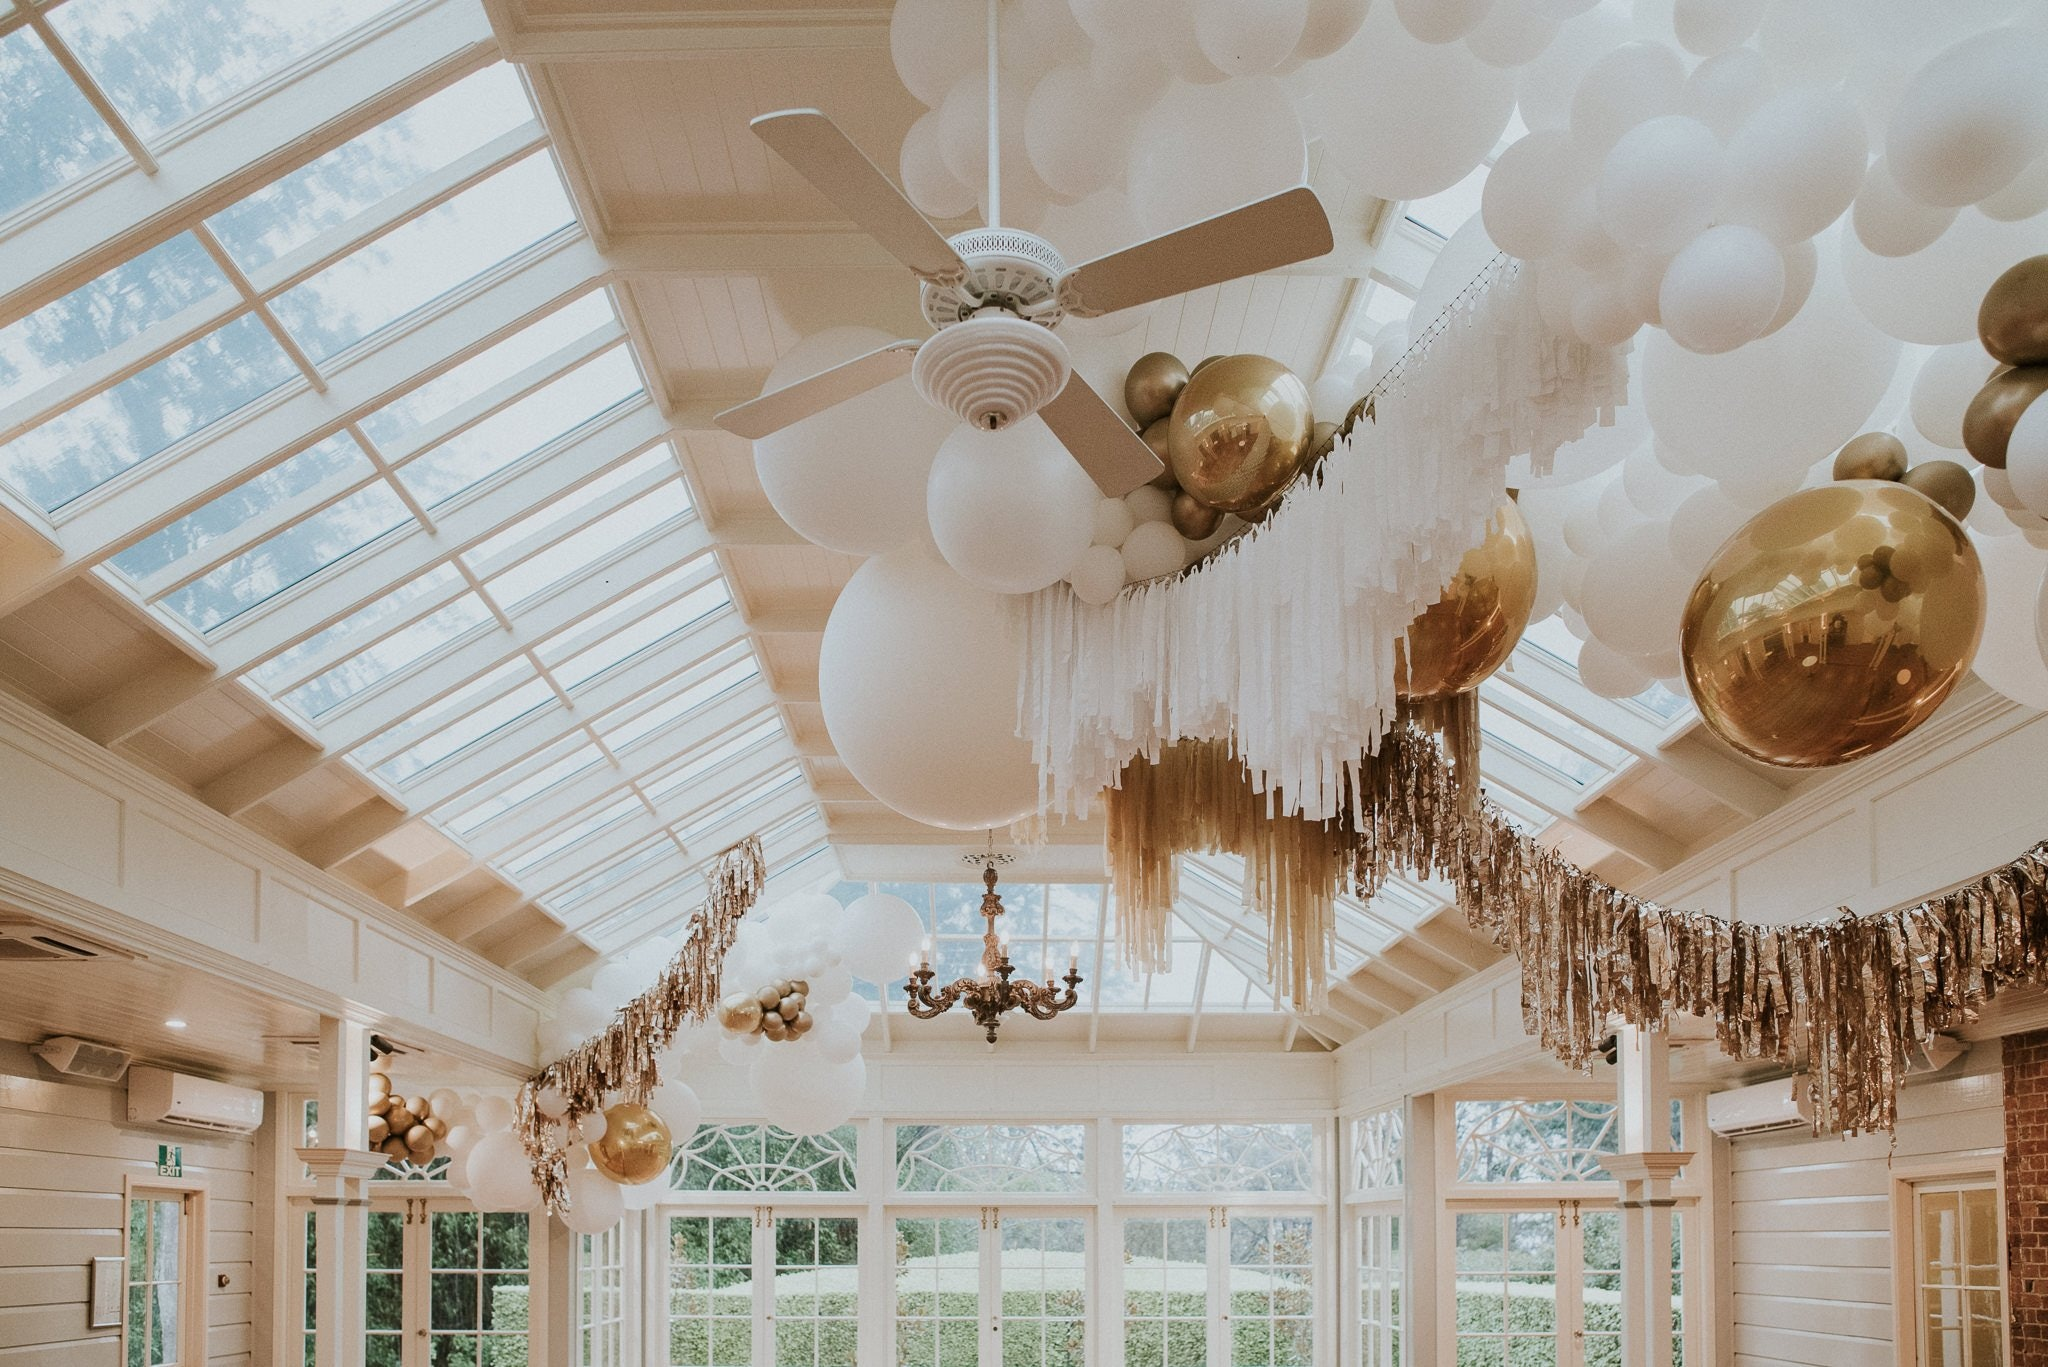 Conservatory with glass ceiling with balloons and garlands hanging from the roof